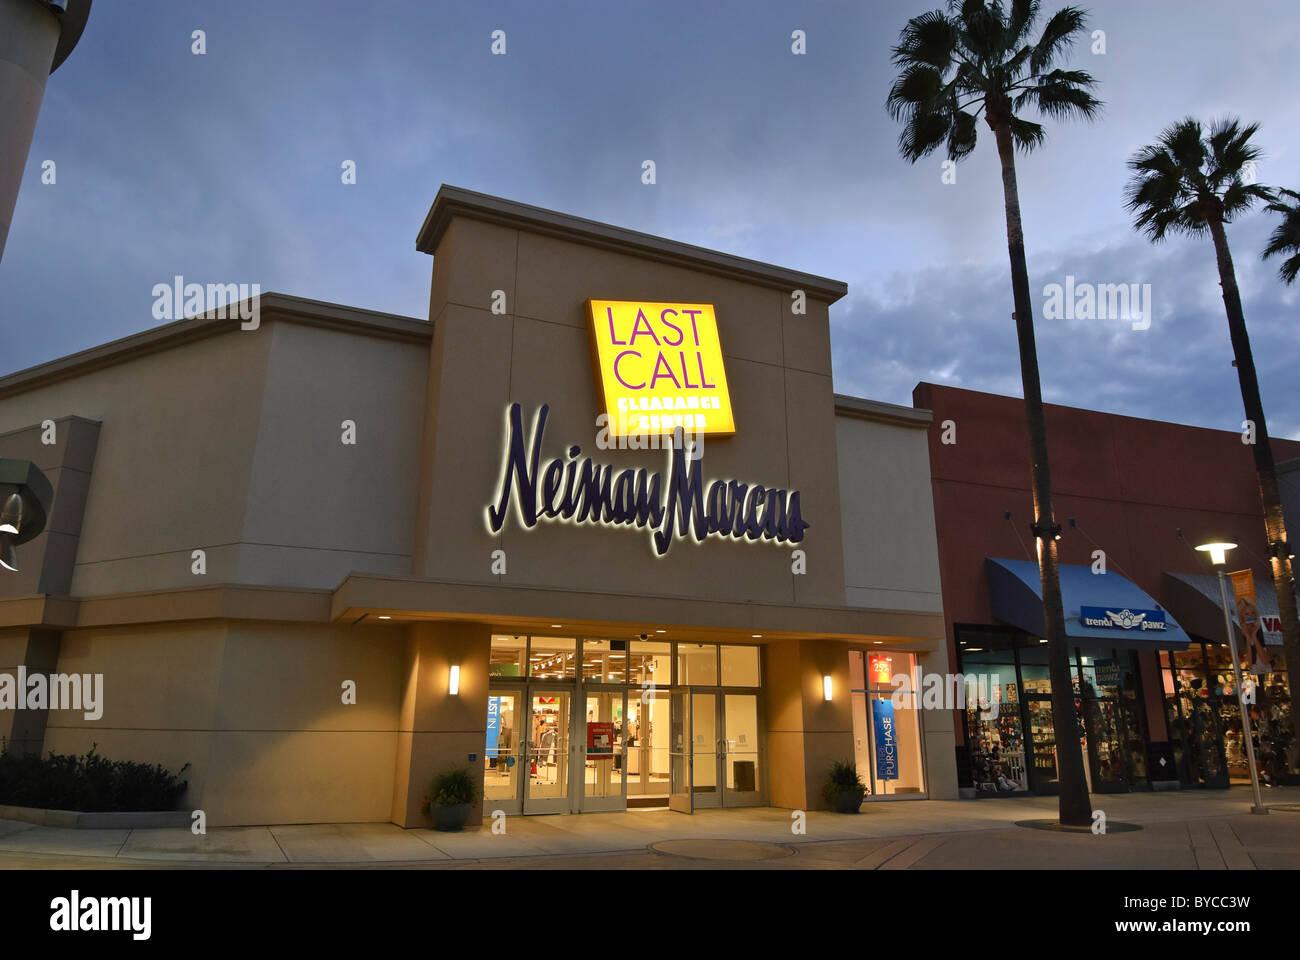 19529e240f42 Neiman Marcus Last Call Outlet Store at the Block in Orange California. -  Stock Image